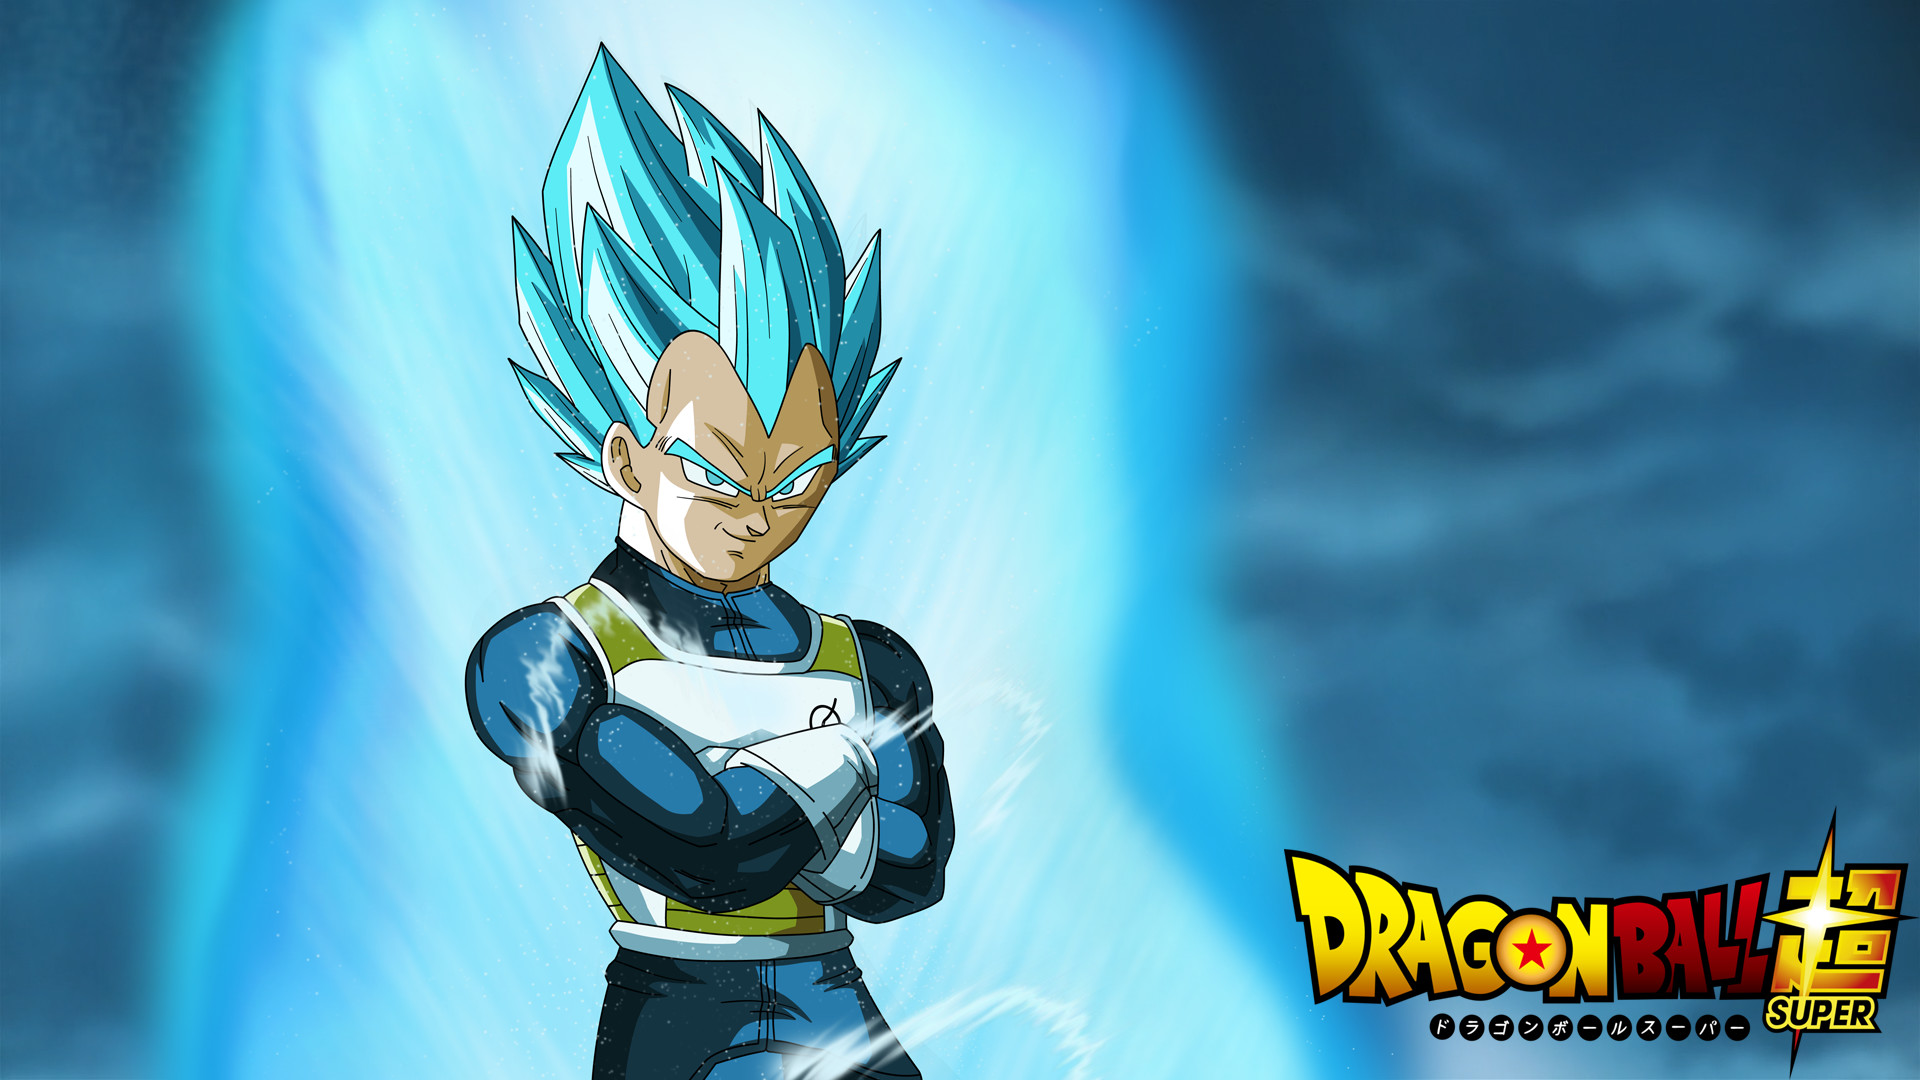 Dbz 3d Wallpapers Dbz Hd Wallpaper 1920x1080 63 Images